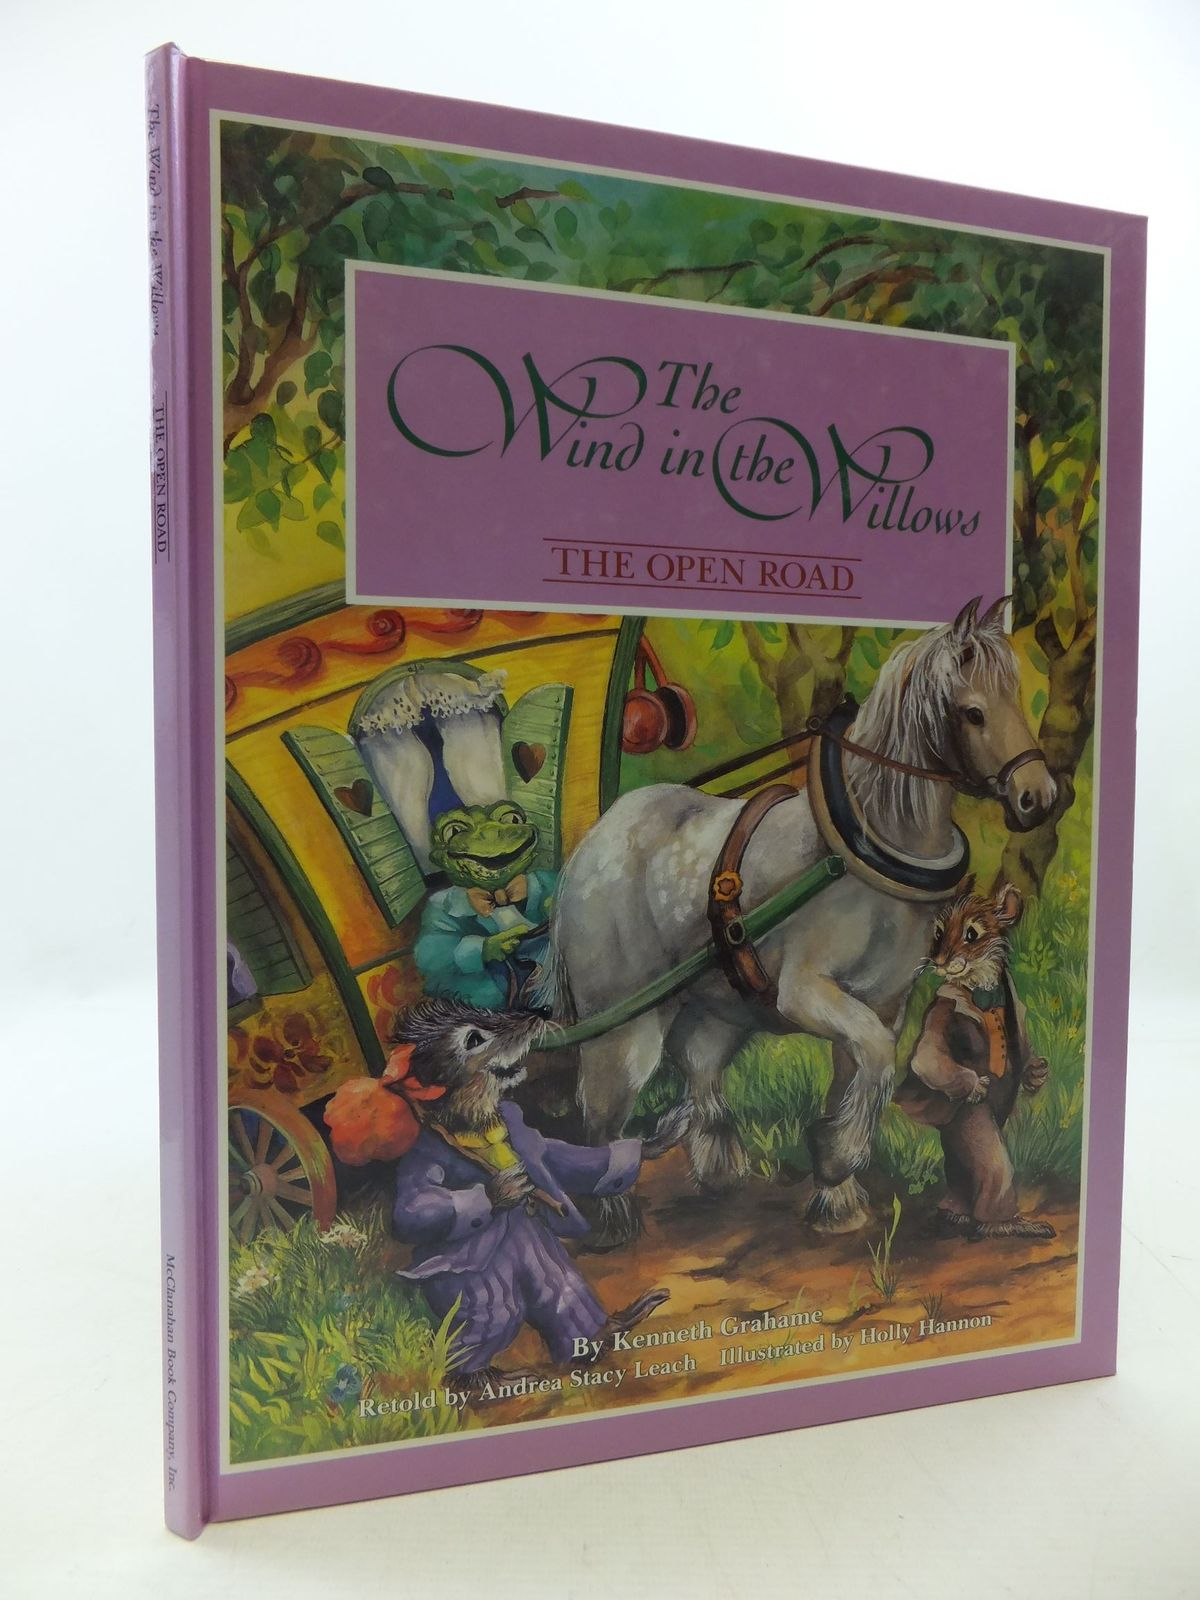 Photo of THE WIND IN THE WILLOWS THE OPEN ROAD written by Grahame, Kenneth<br />Leach, Andrea Stacy illustrated by Hannon, Holly published by McClanahan Book Company Inc. (STOCK CODE: 2112436)  for sale by Stella & Rose's Books